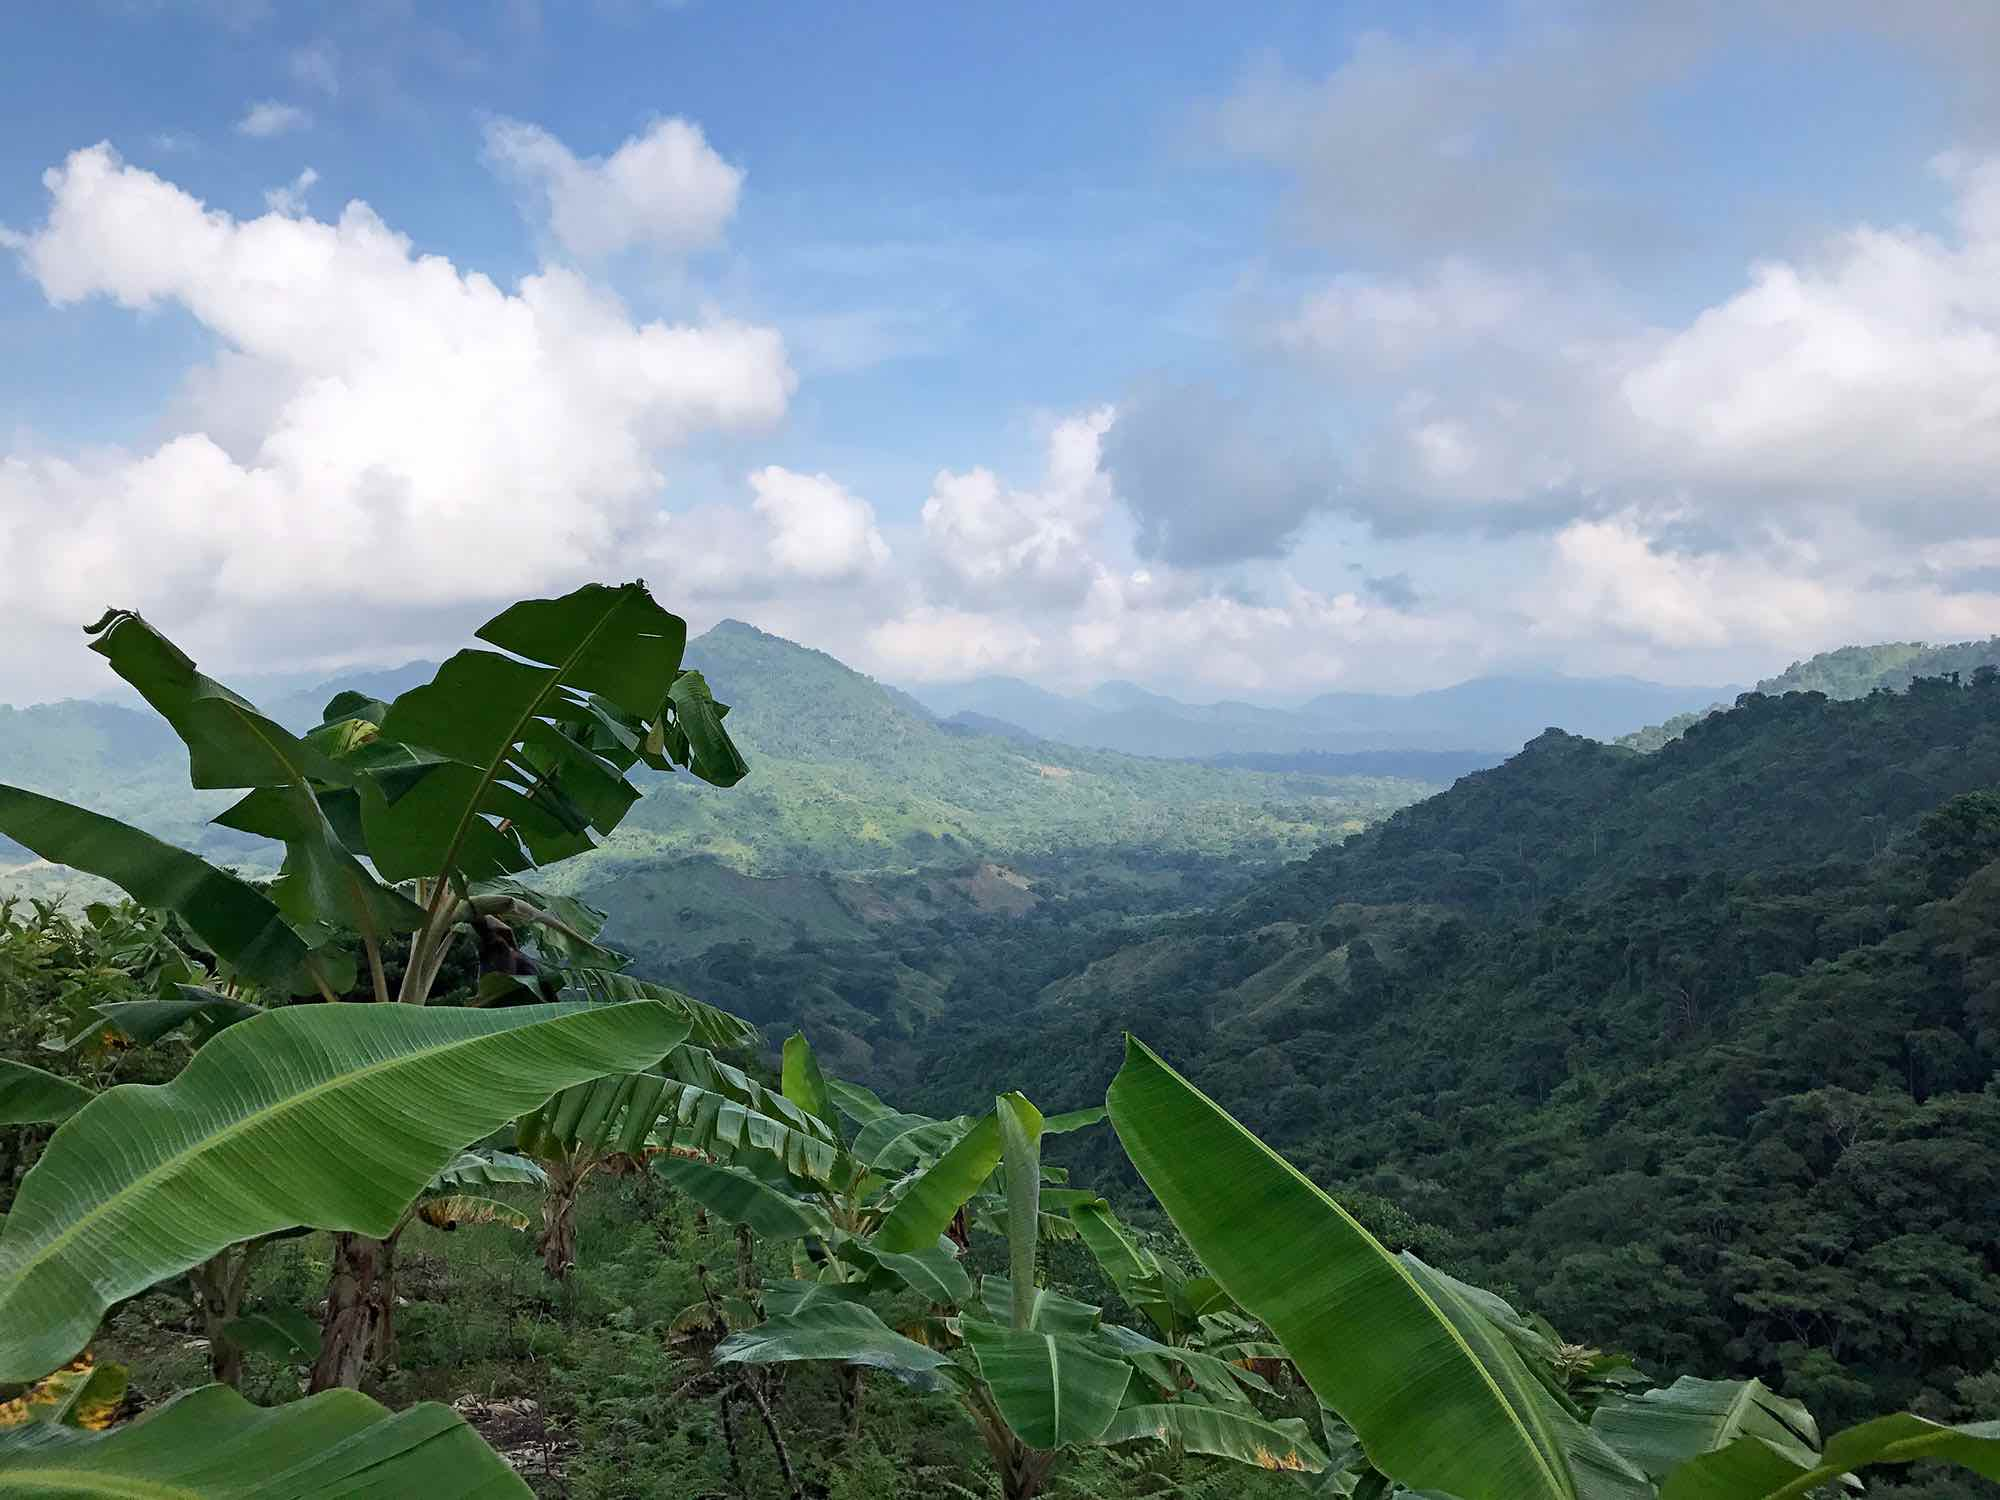 hiking to the Lost City, Colombia